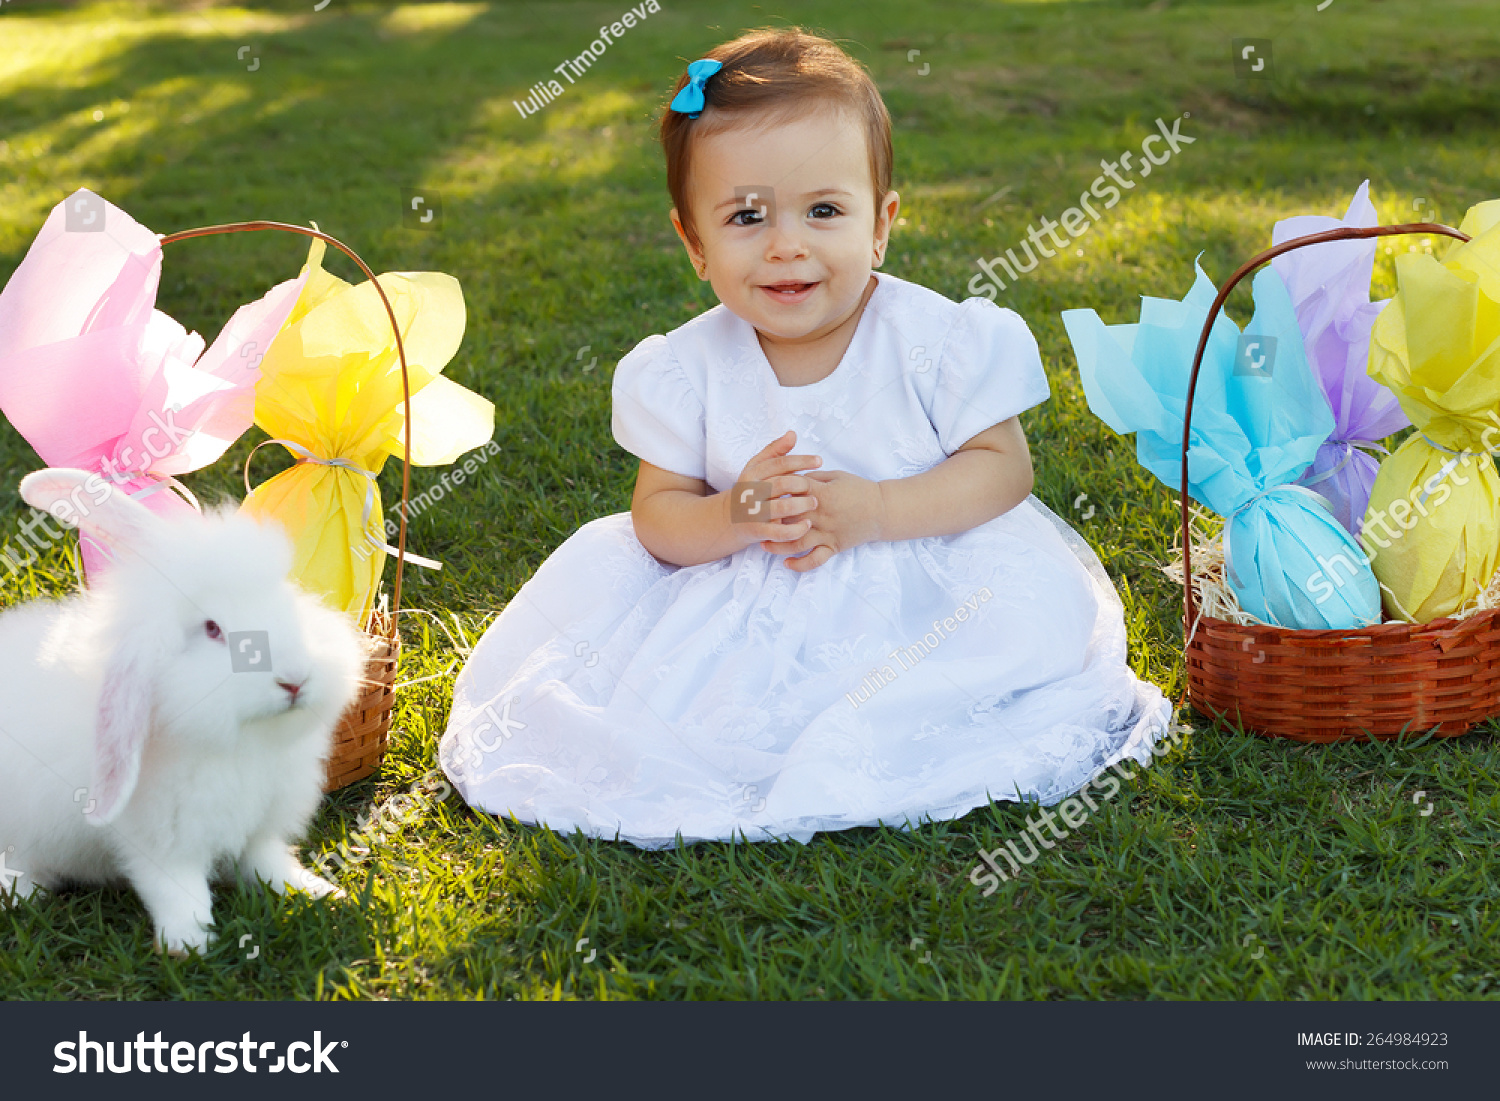 bfee636d9 Cute Smiling Baby Girl White Dress Stock Photo (Edit Now) 264984923 ...